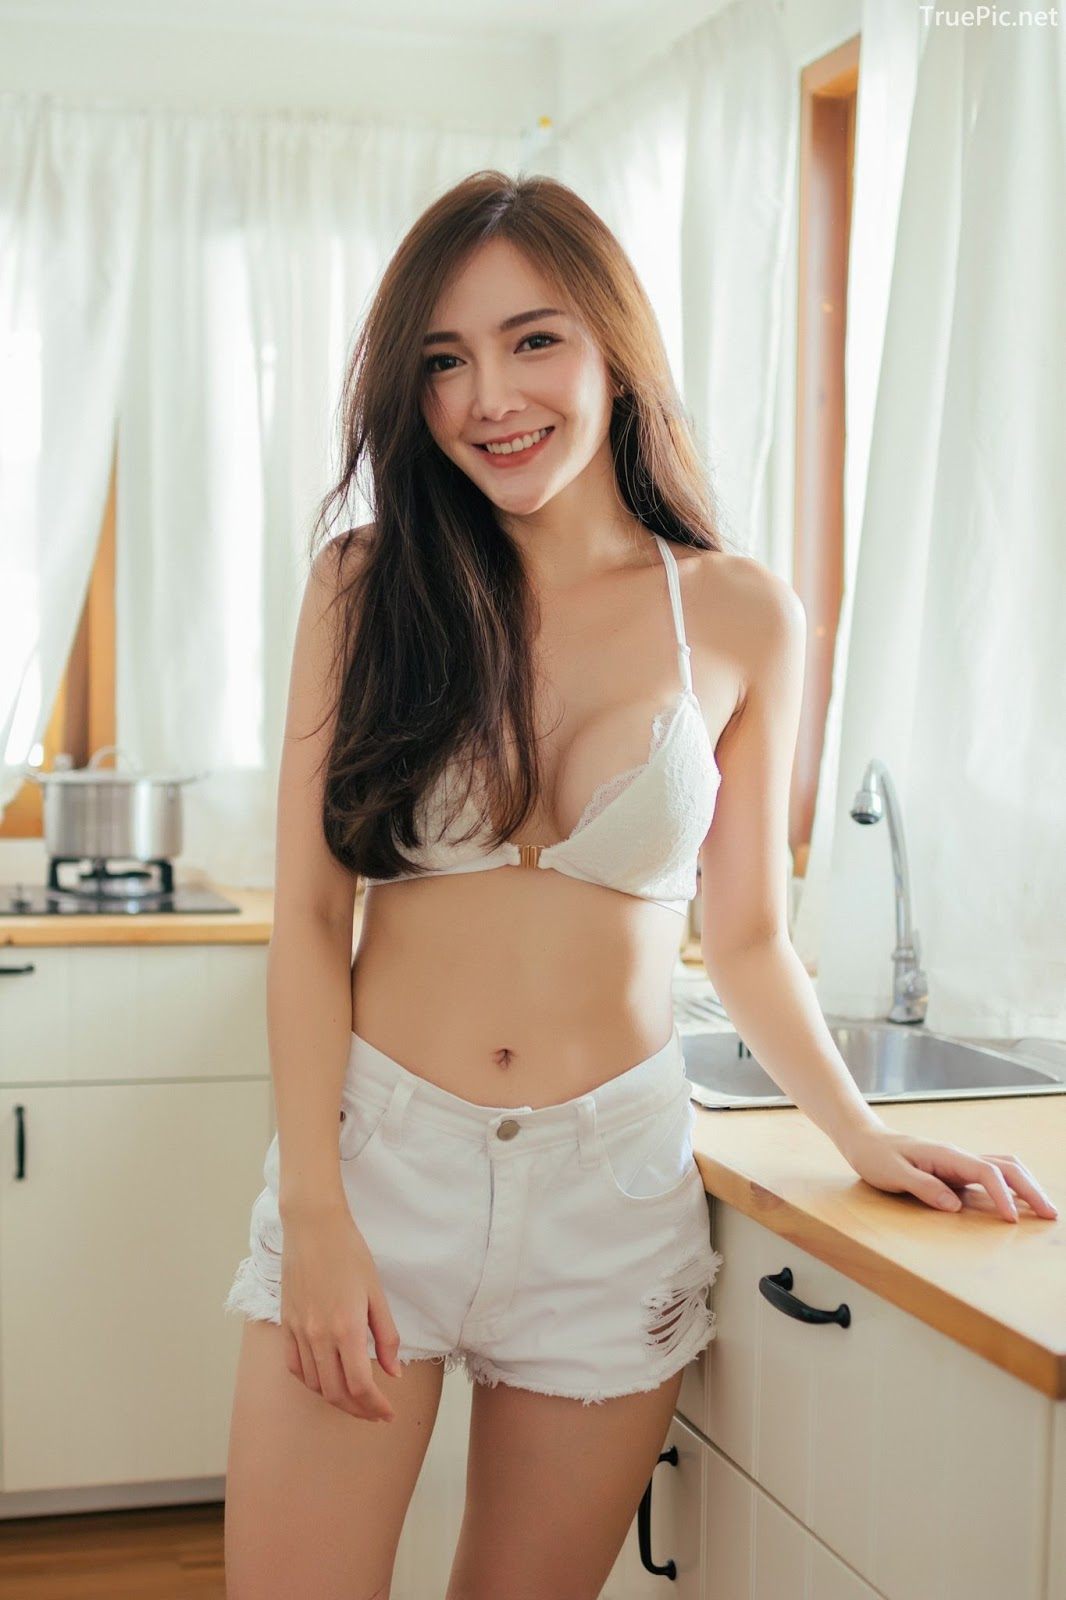 Thailand sexy model Rossarin Klinhom with photo album By your side - Picture 1